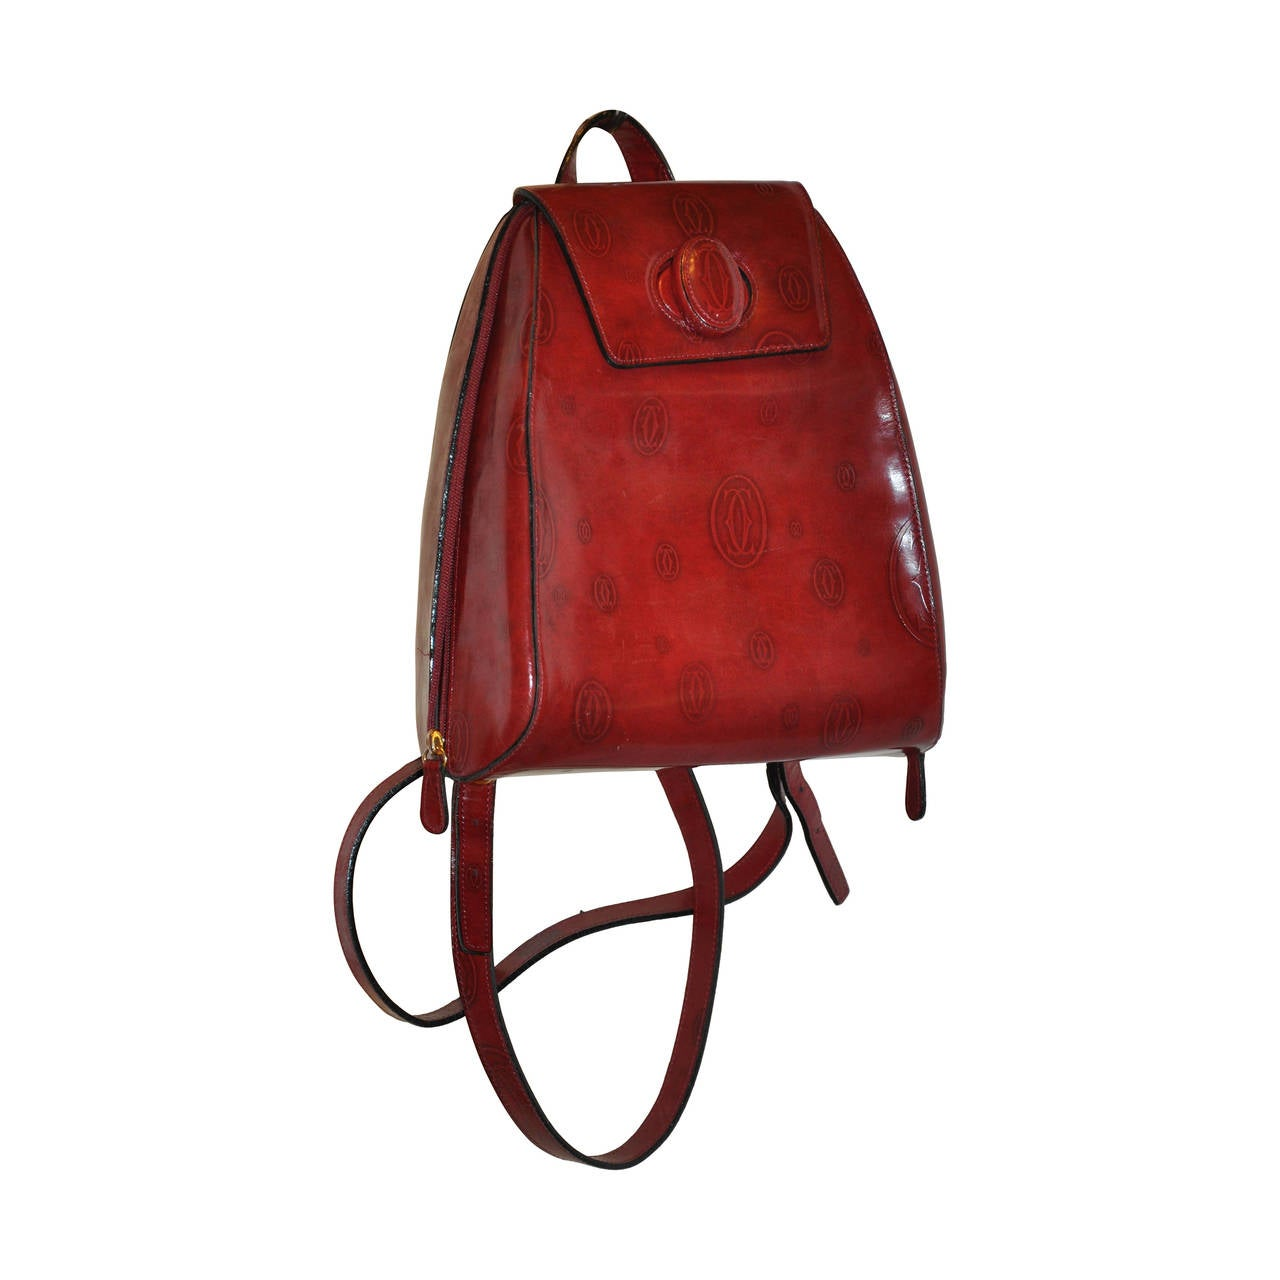 Cartier Signature Burgundy Backpack For Sale